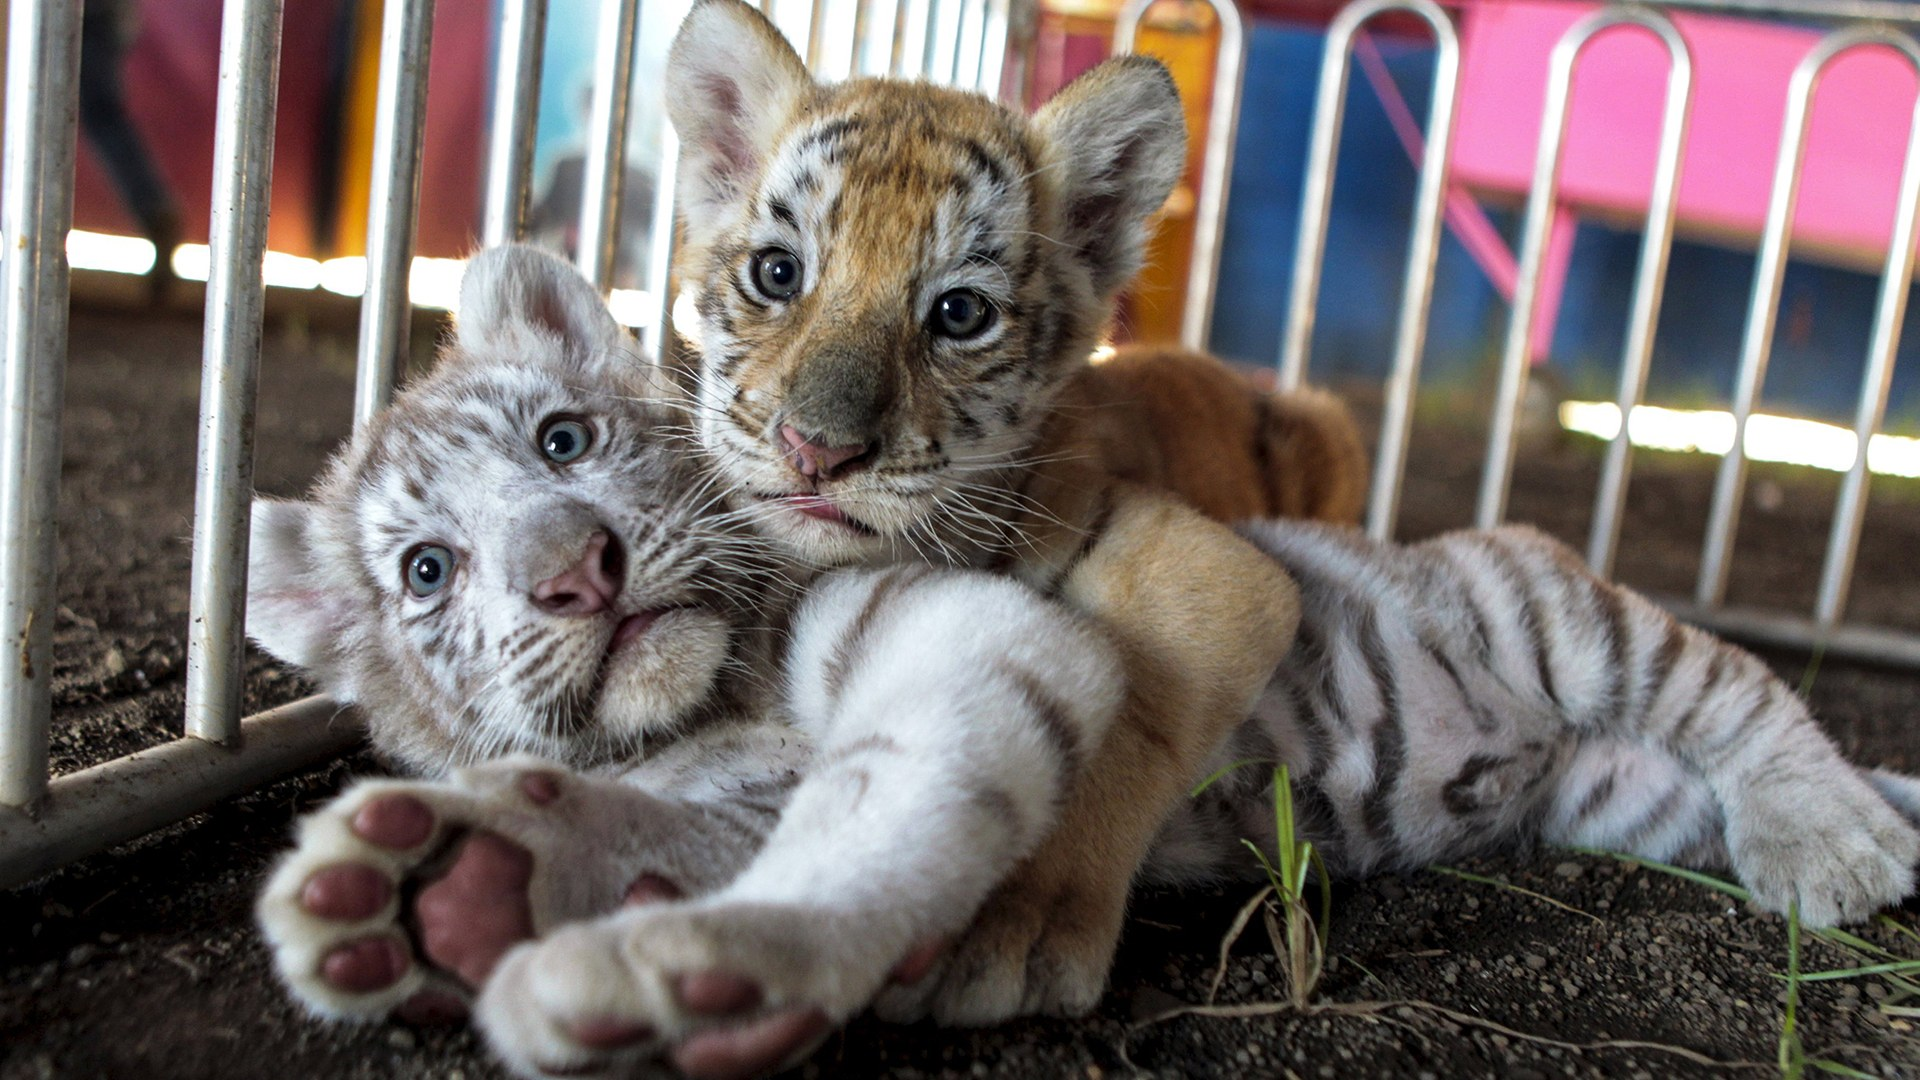 Image: A white Bengal tiger cub plays with its sister, a golden Bengal tiger cub, at the Circo de Renato  in Ciudad Sandino, Nicaragua